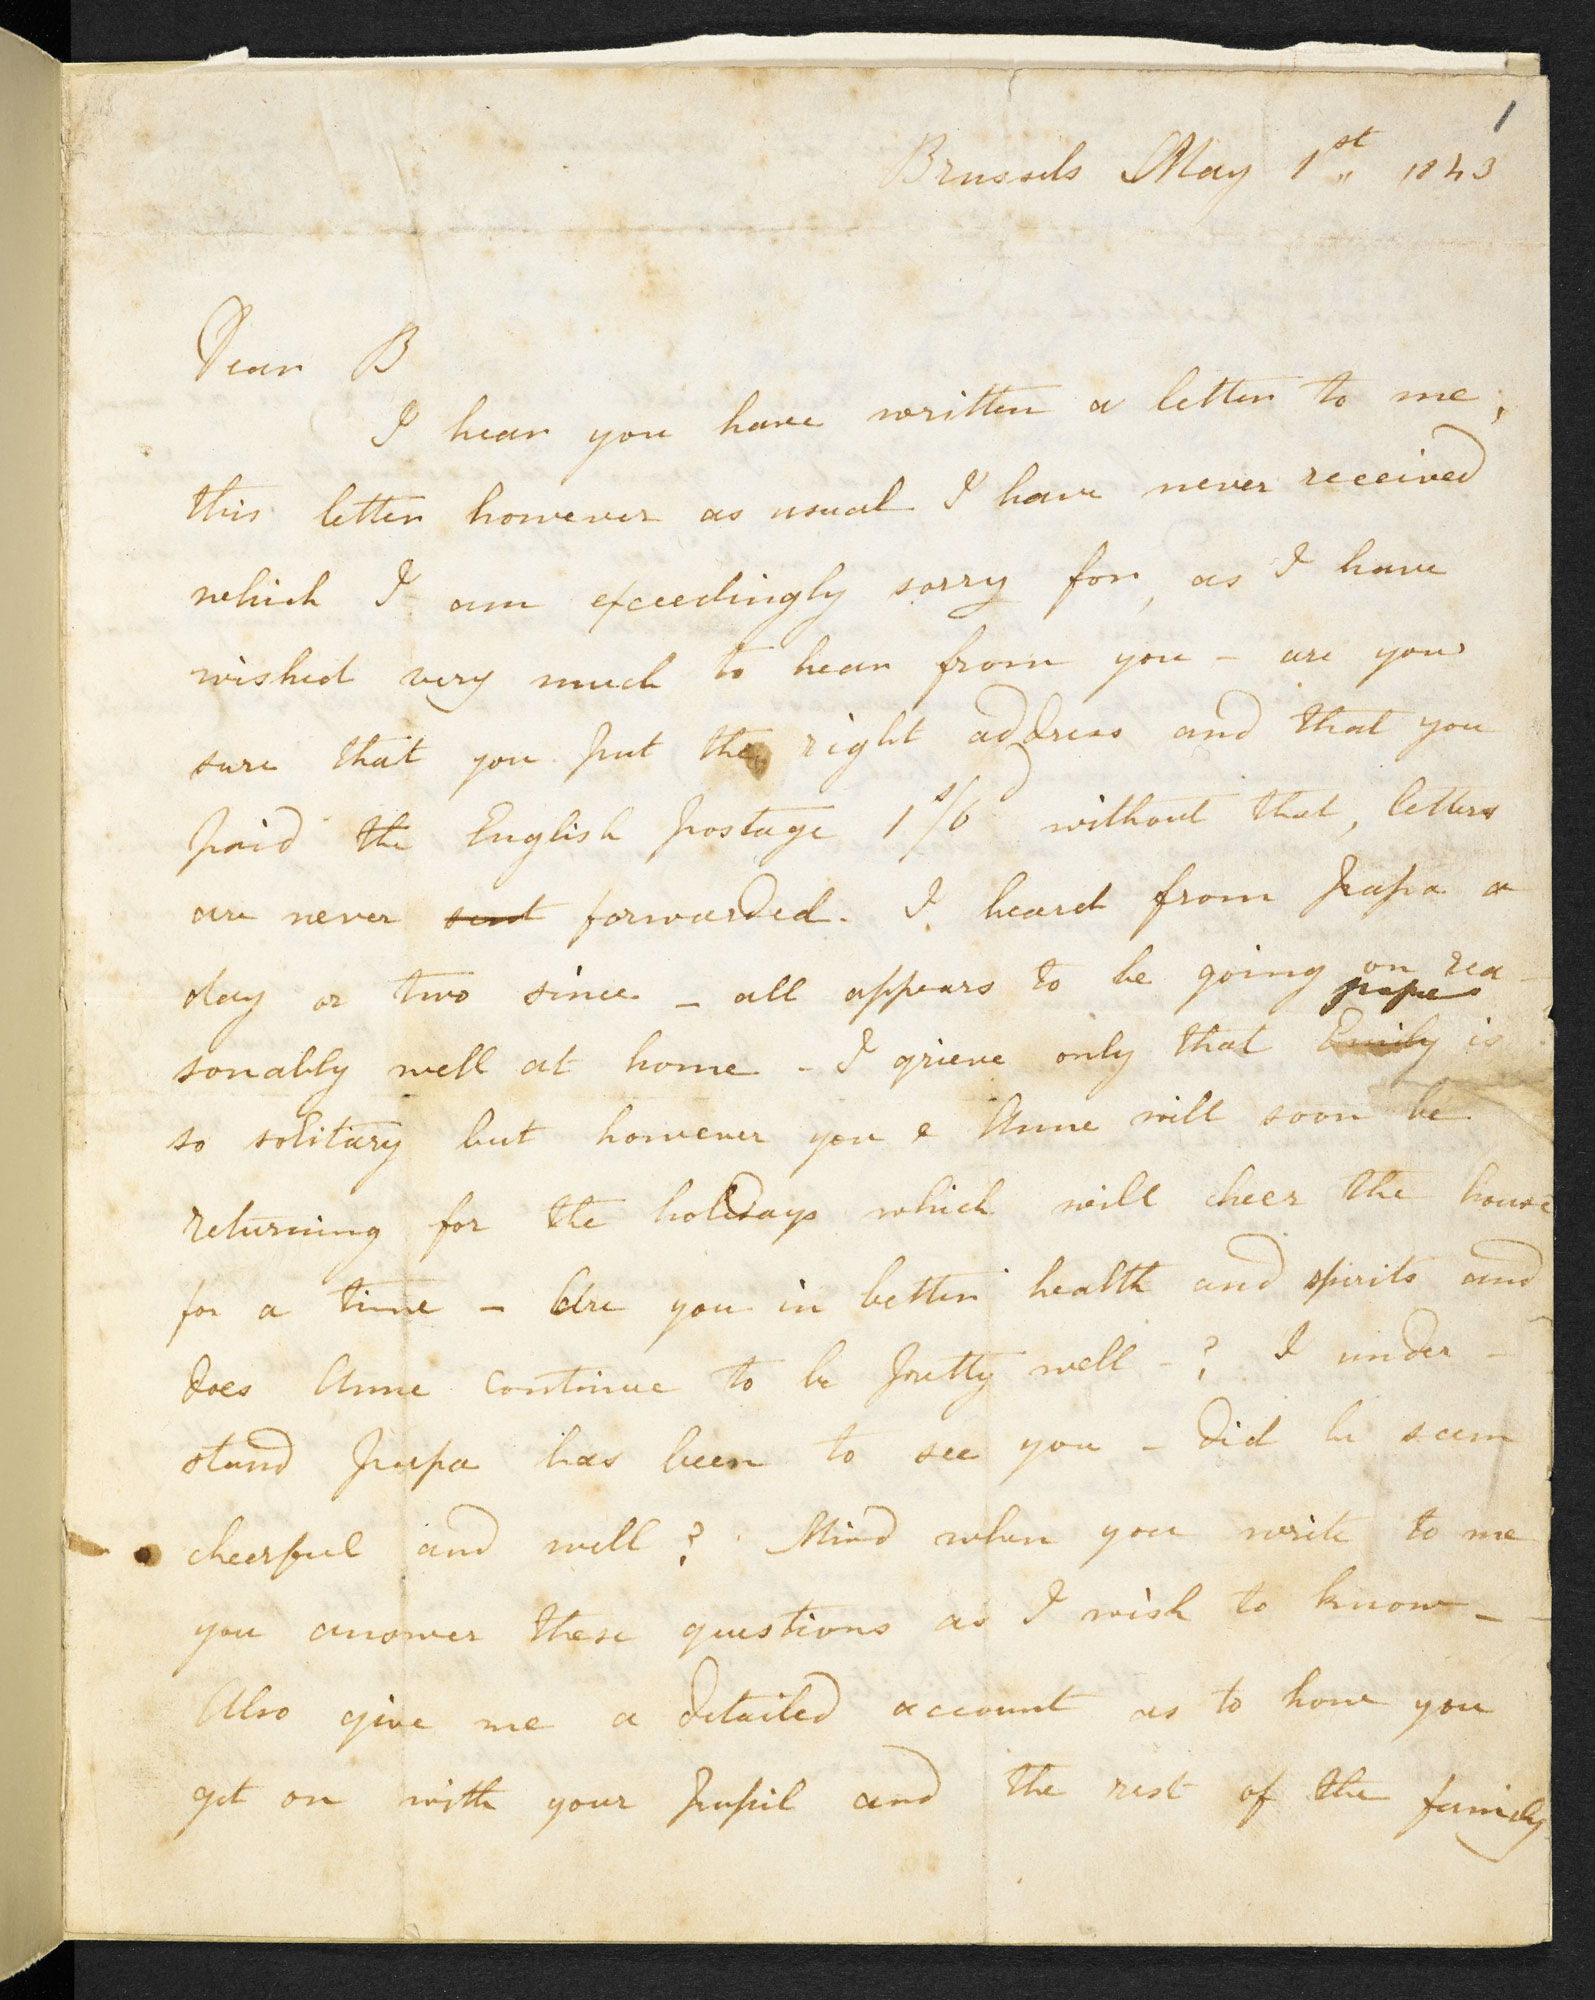 Letter from Charlotte Brontë to her brother Branwell, 1 May 1843